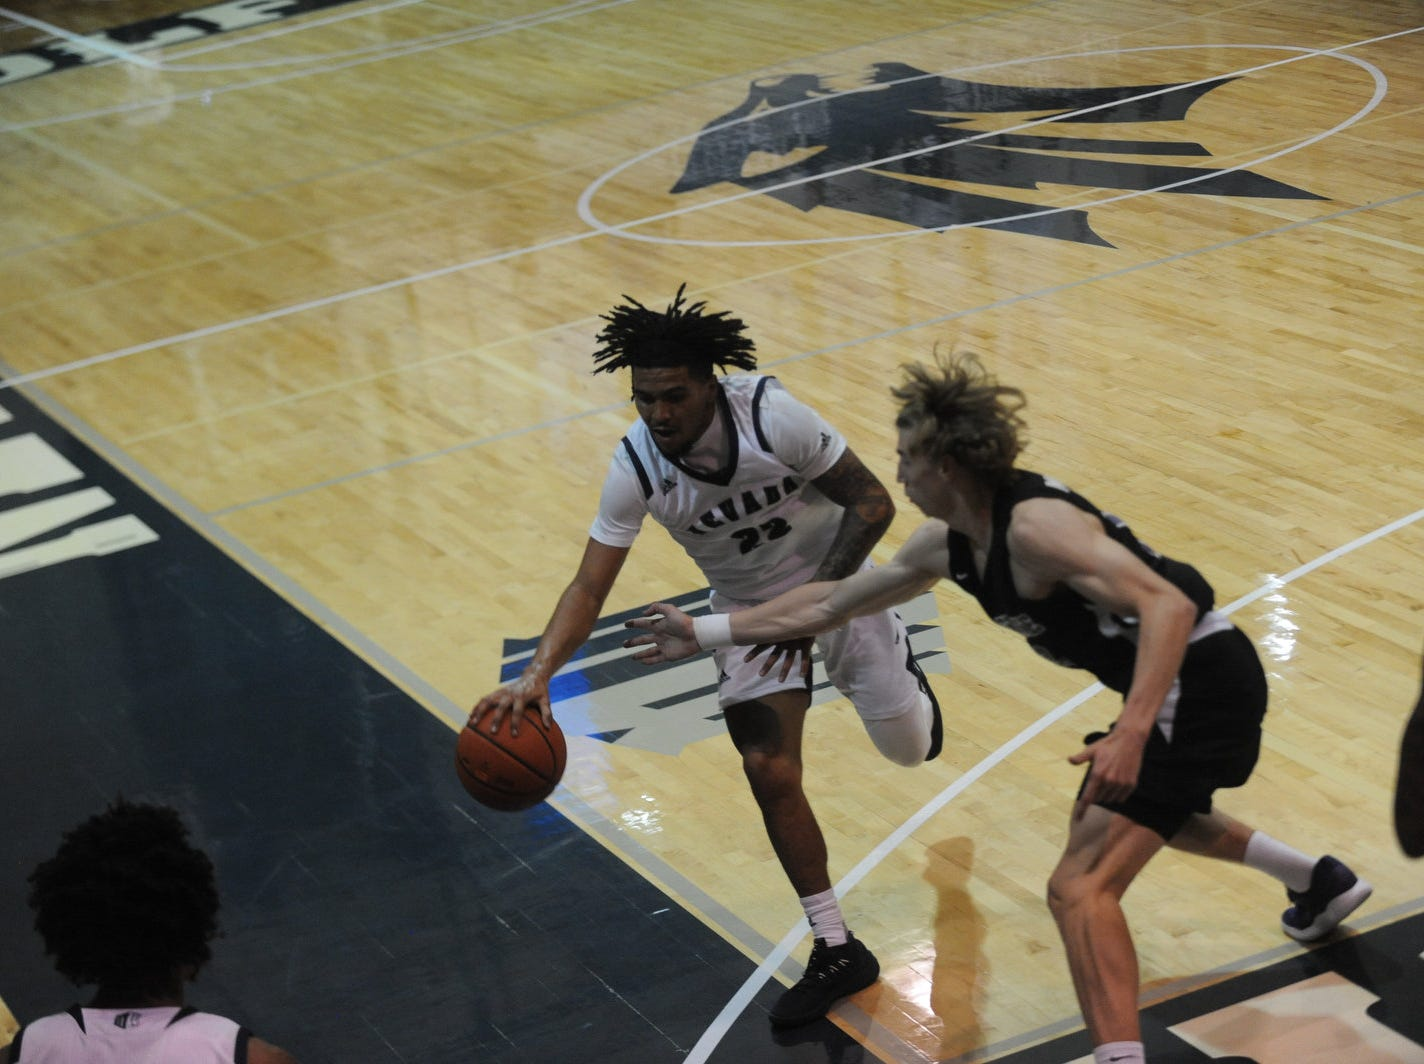 Nevada takes on San Francisco State at the Old Virginia St. Gym in Reno on Oct. 26, 2018.